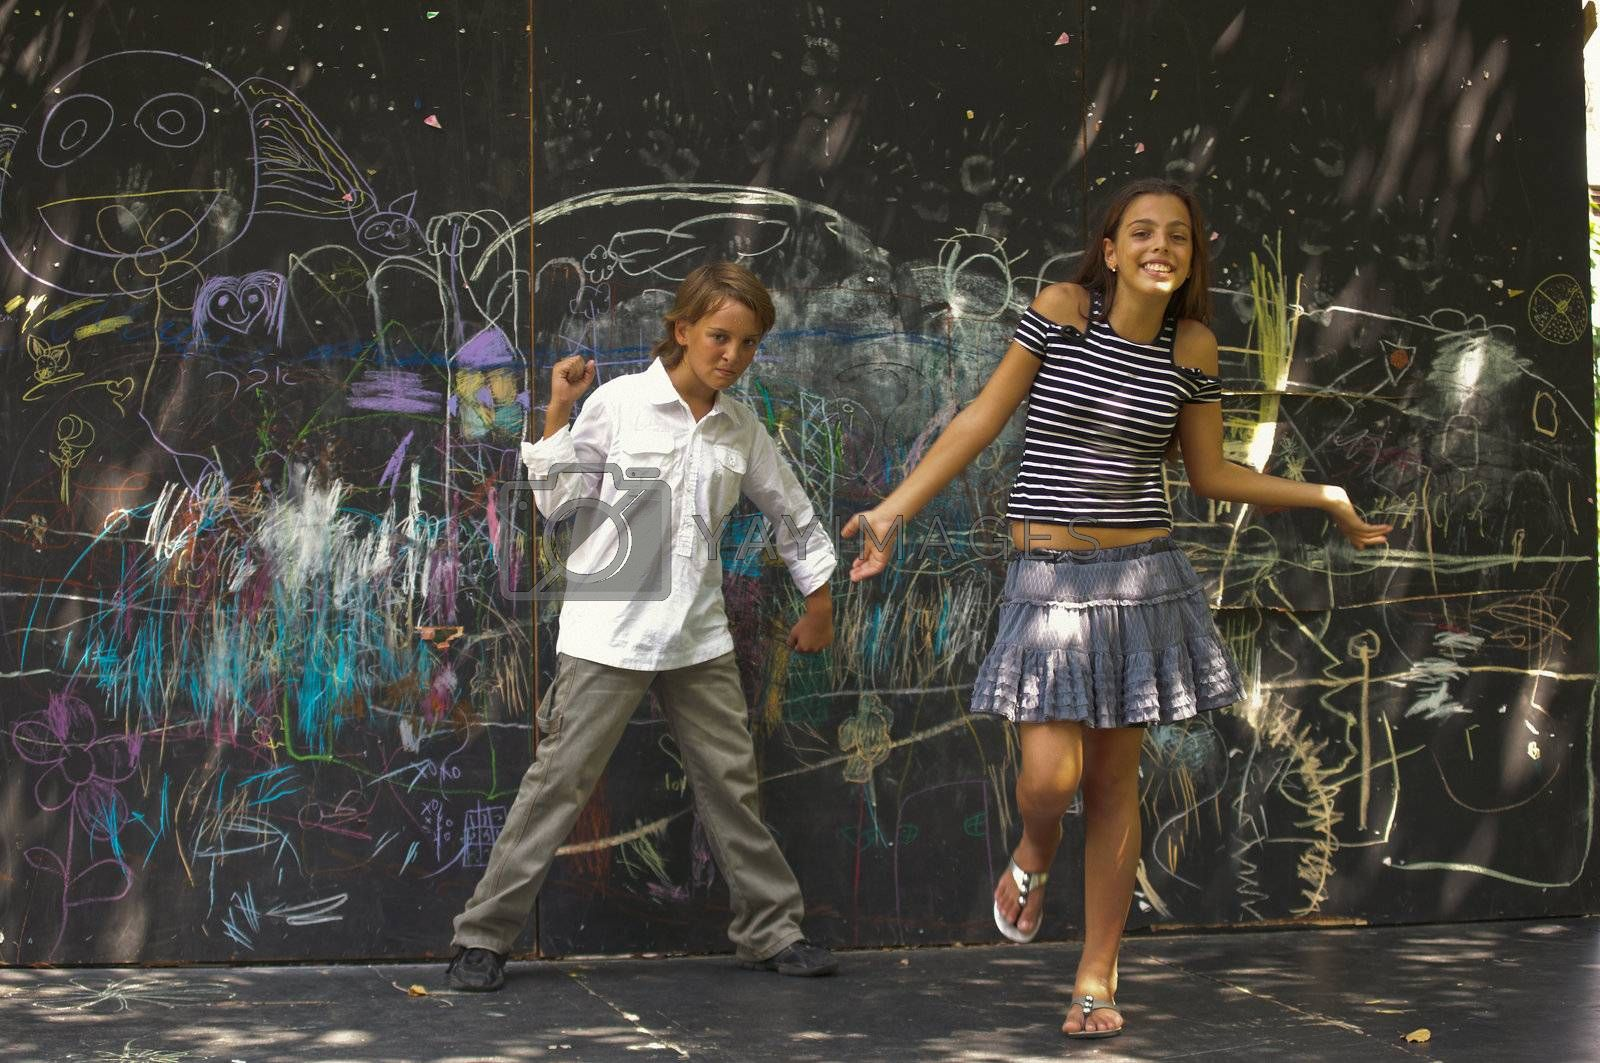 Portrait of  dancing boys and girls near a wall with graffiti.